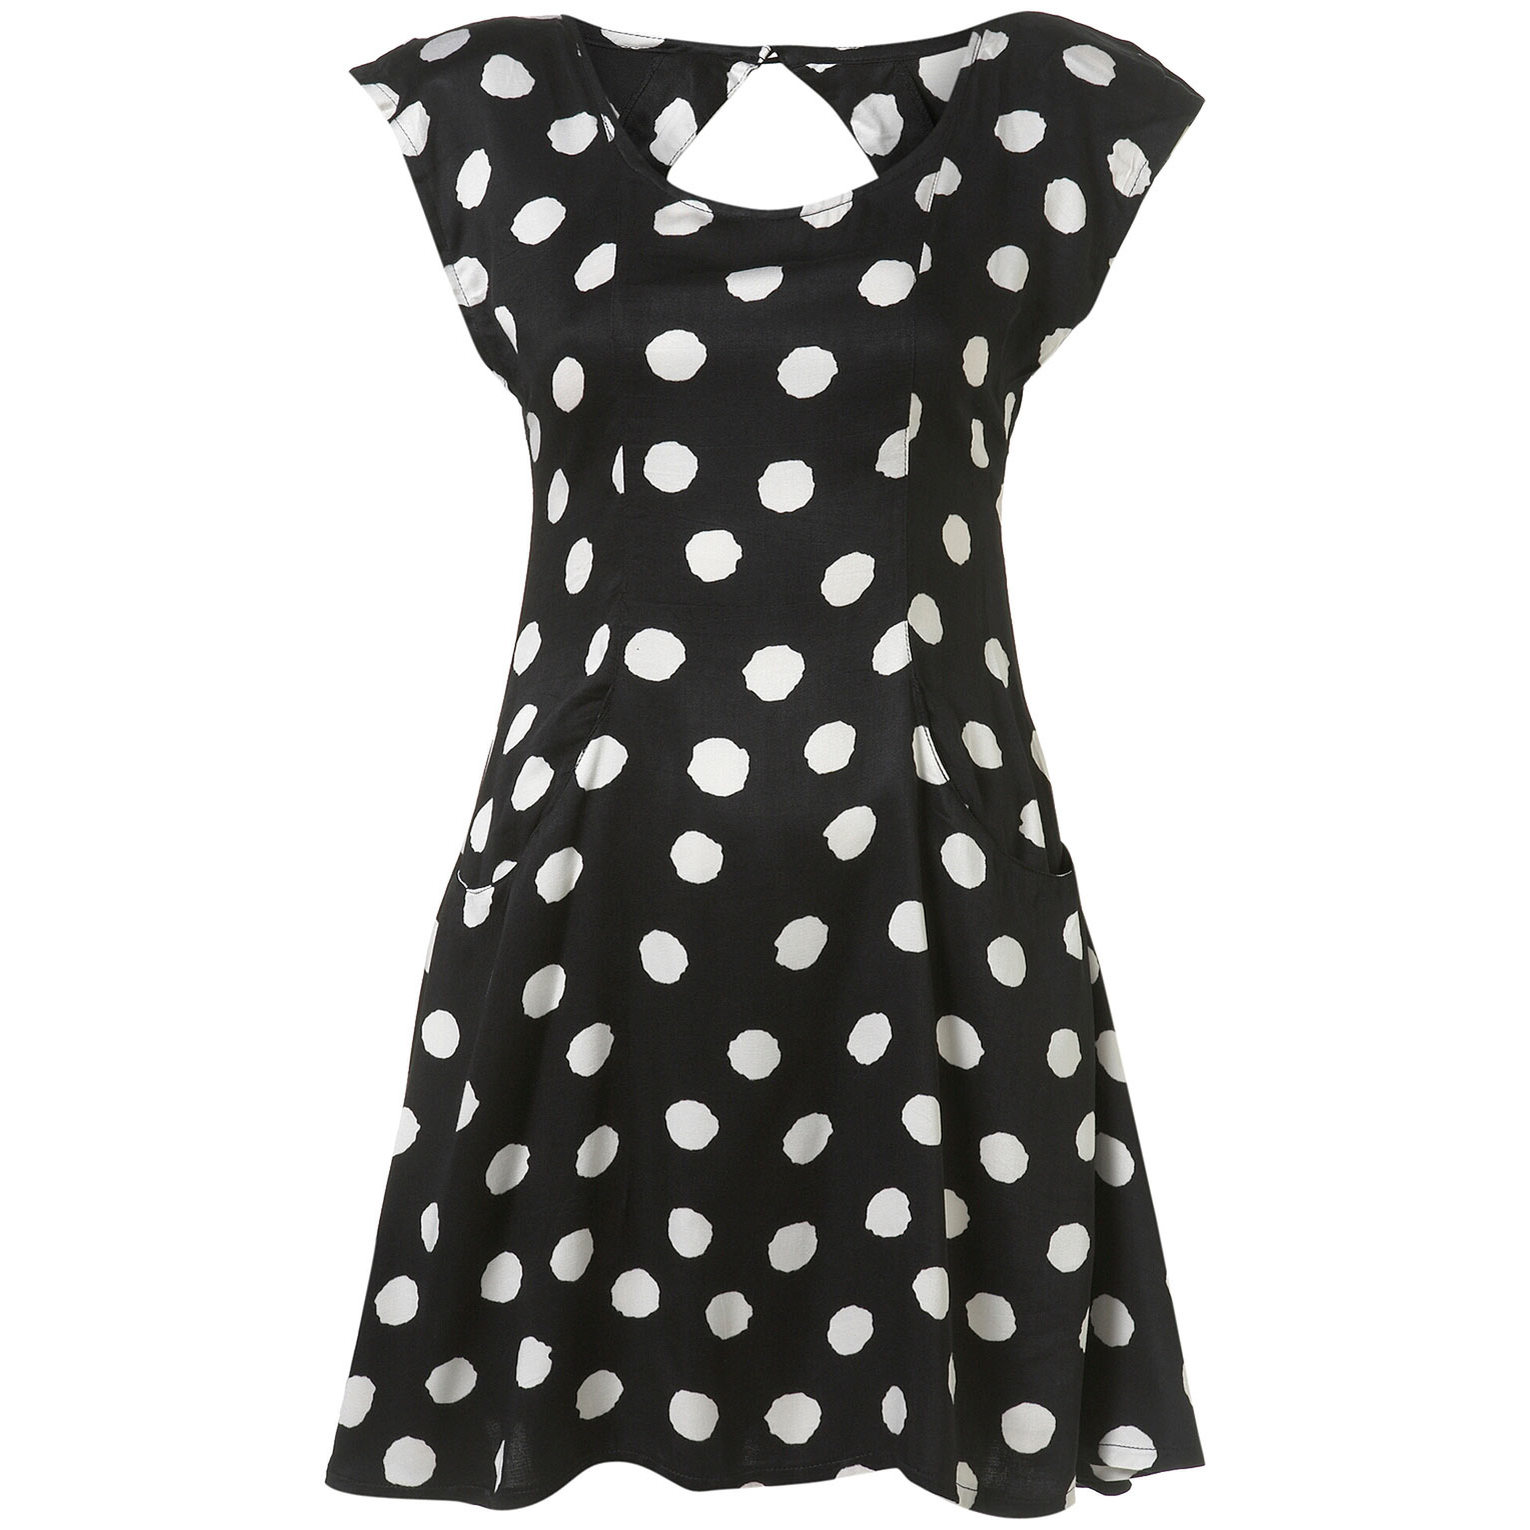 ★Motel★手持有(XS,S)ラスト!Patty Dress Black Big Ivory Dot